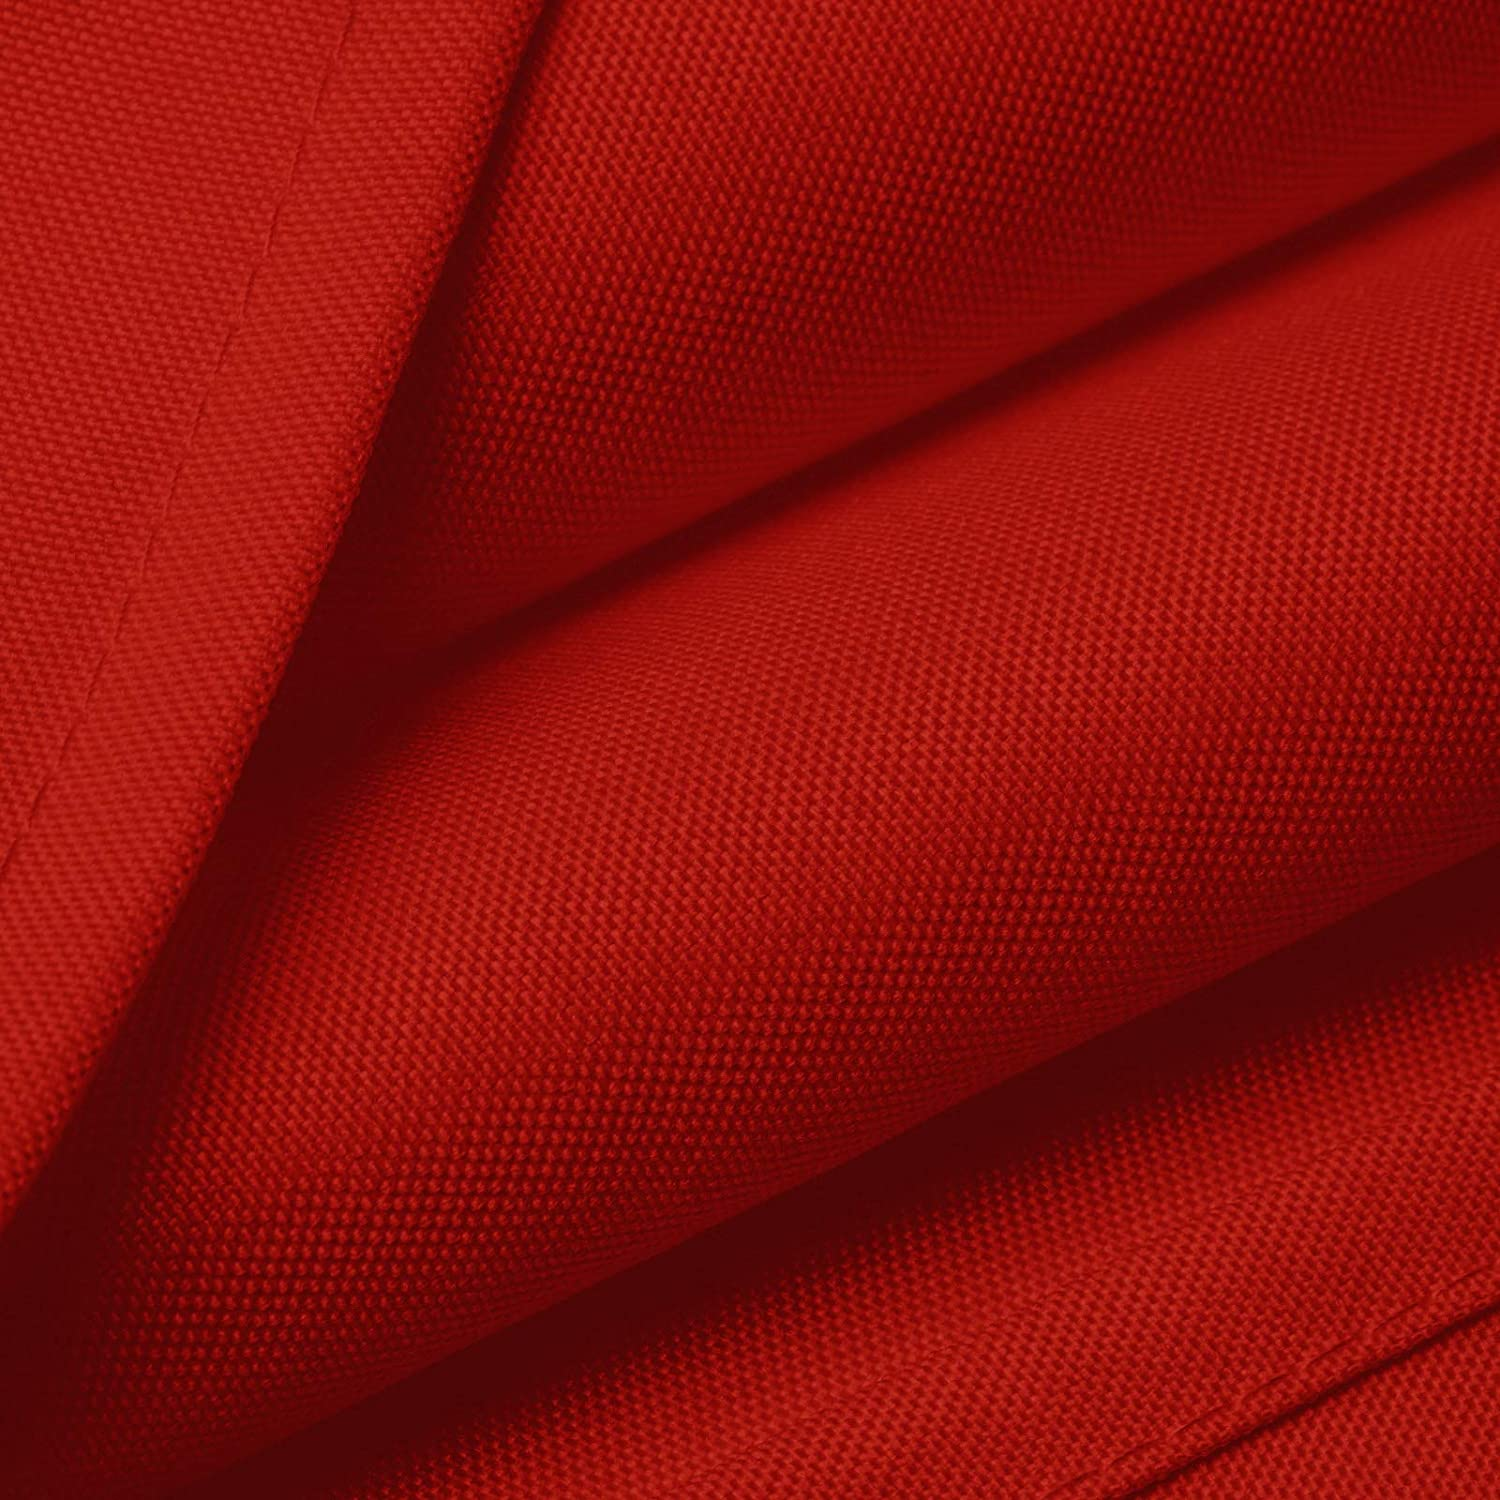 Rectangular Polyester Fabric Table Cloth 60 x 102 Premium Tablecloth for Wedding//Banquet//Restaurant Red Mill /& Thread